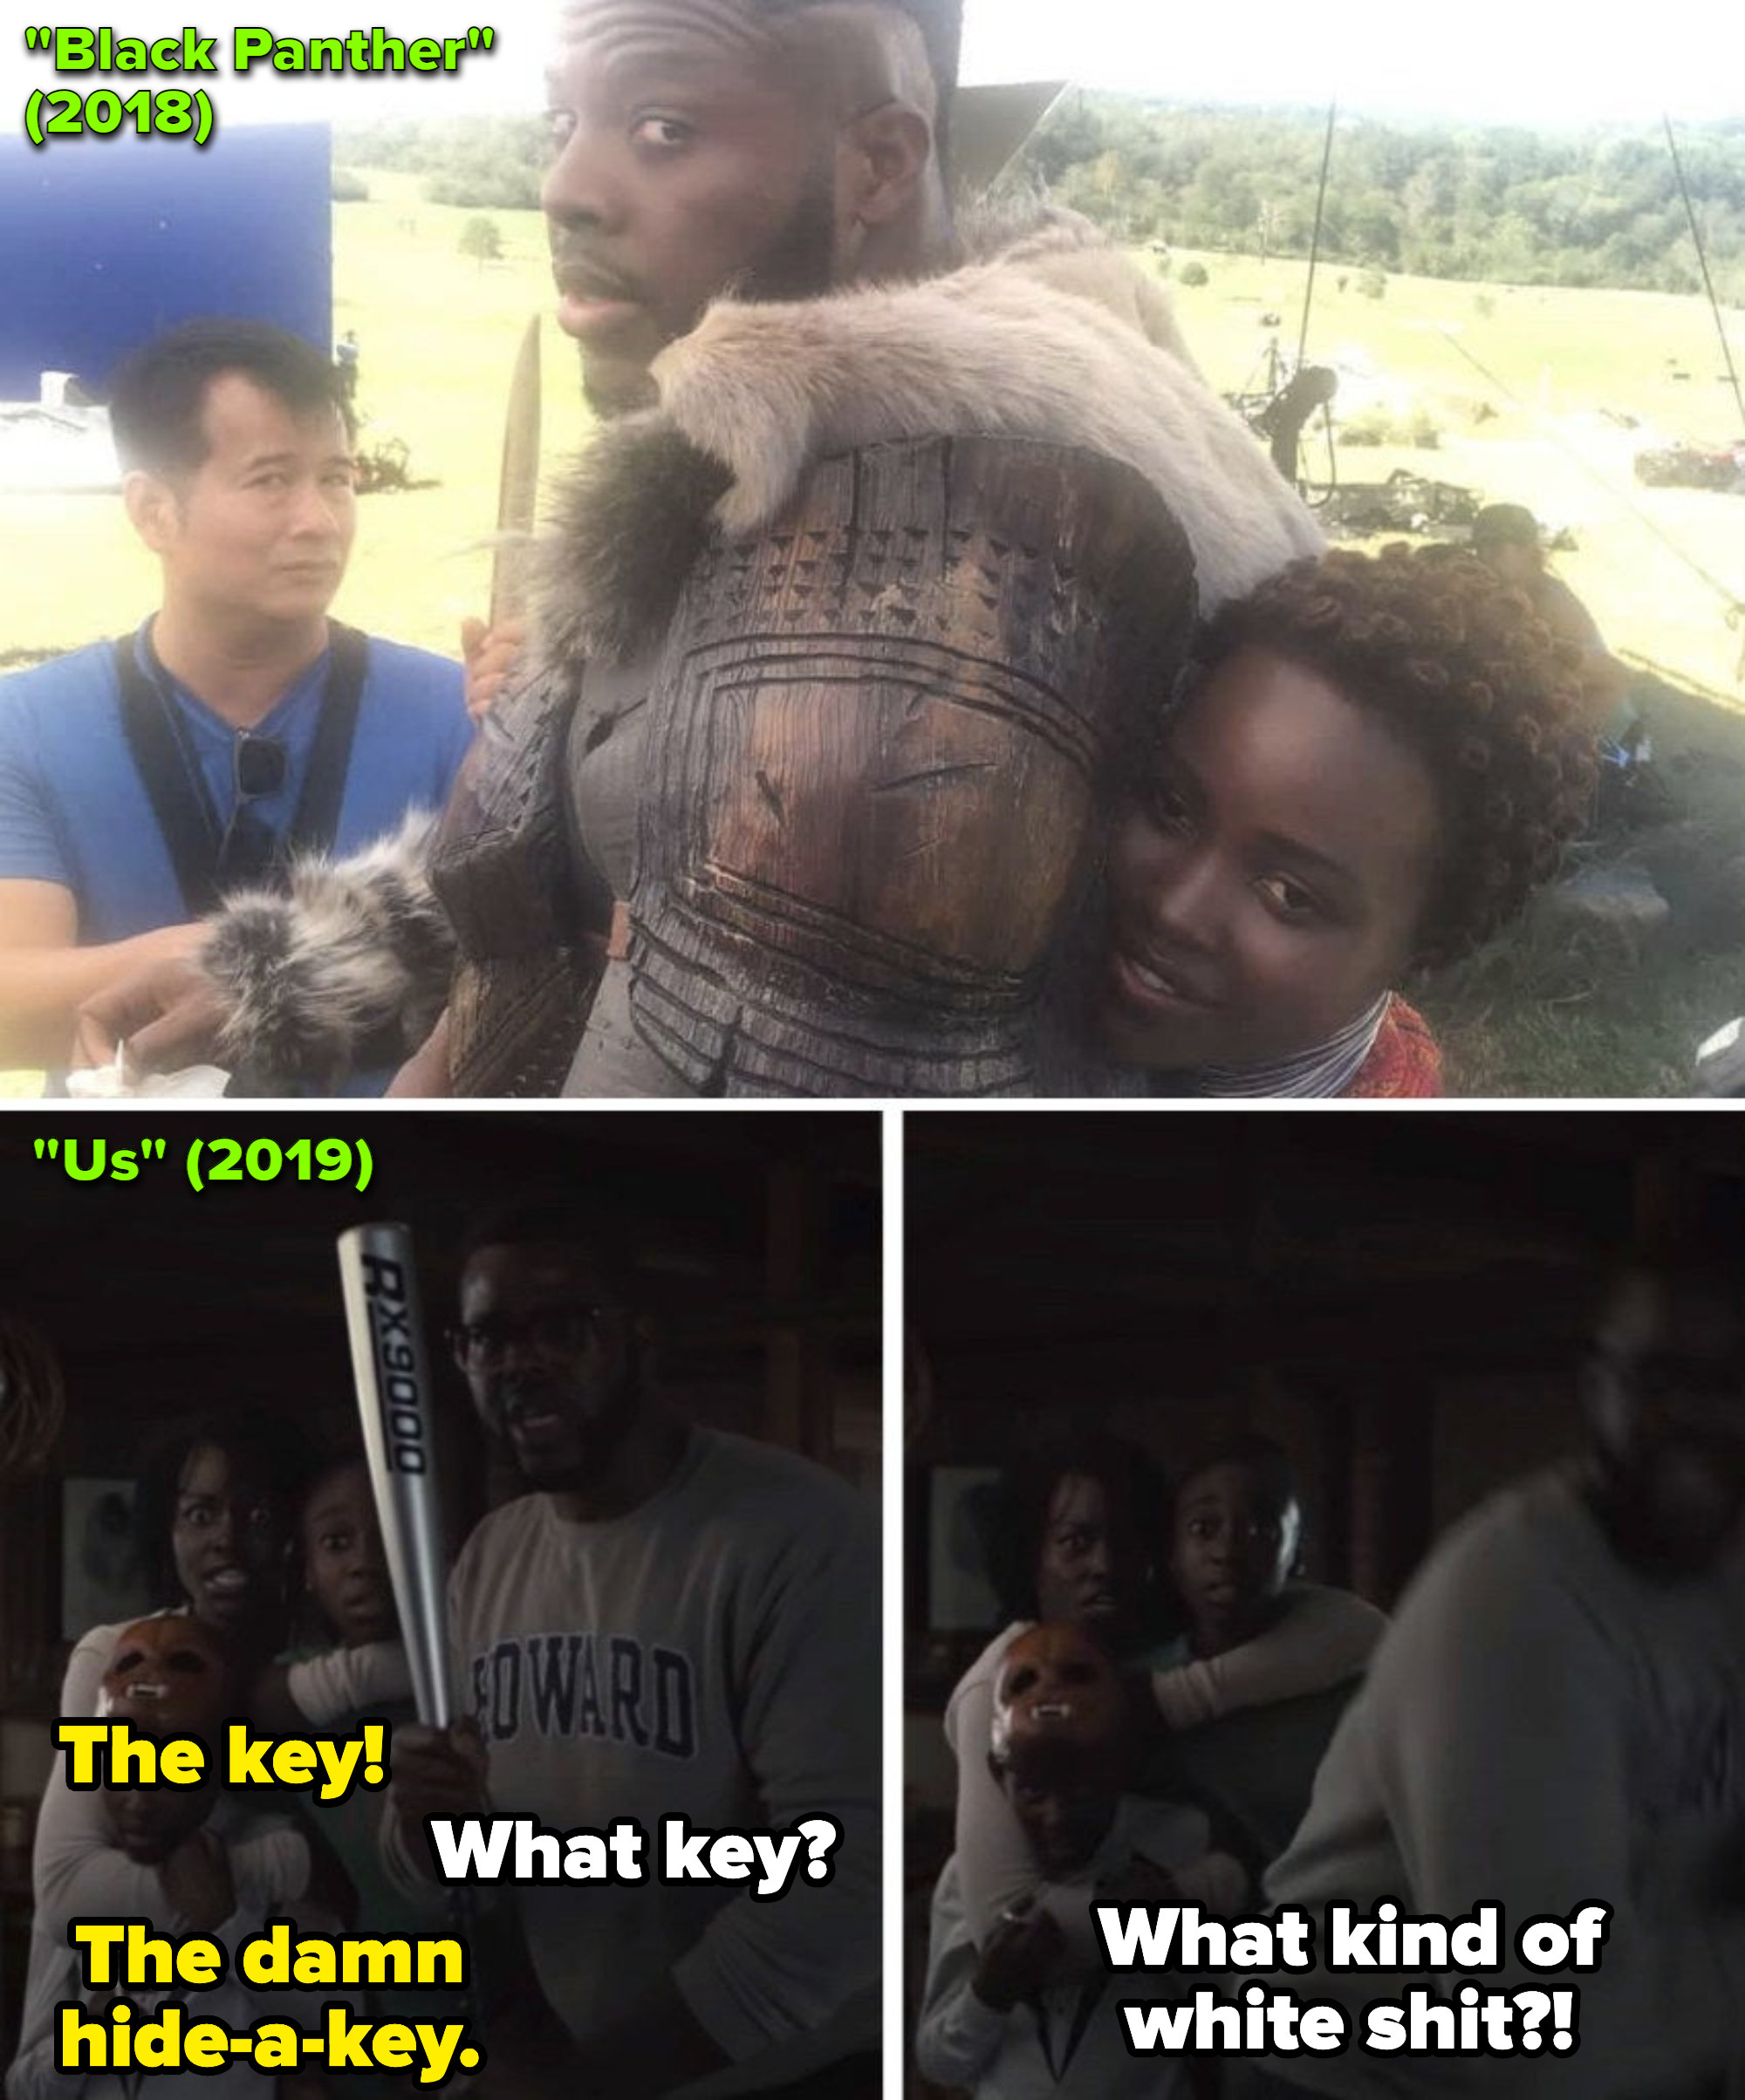 """Lupita Nyong'o and Winston Duke sitting in a chair behind-the-scenes of """"Black Panther;"""" Adelaide and Gabe in """"Us"""" looking at the unlocked door"""